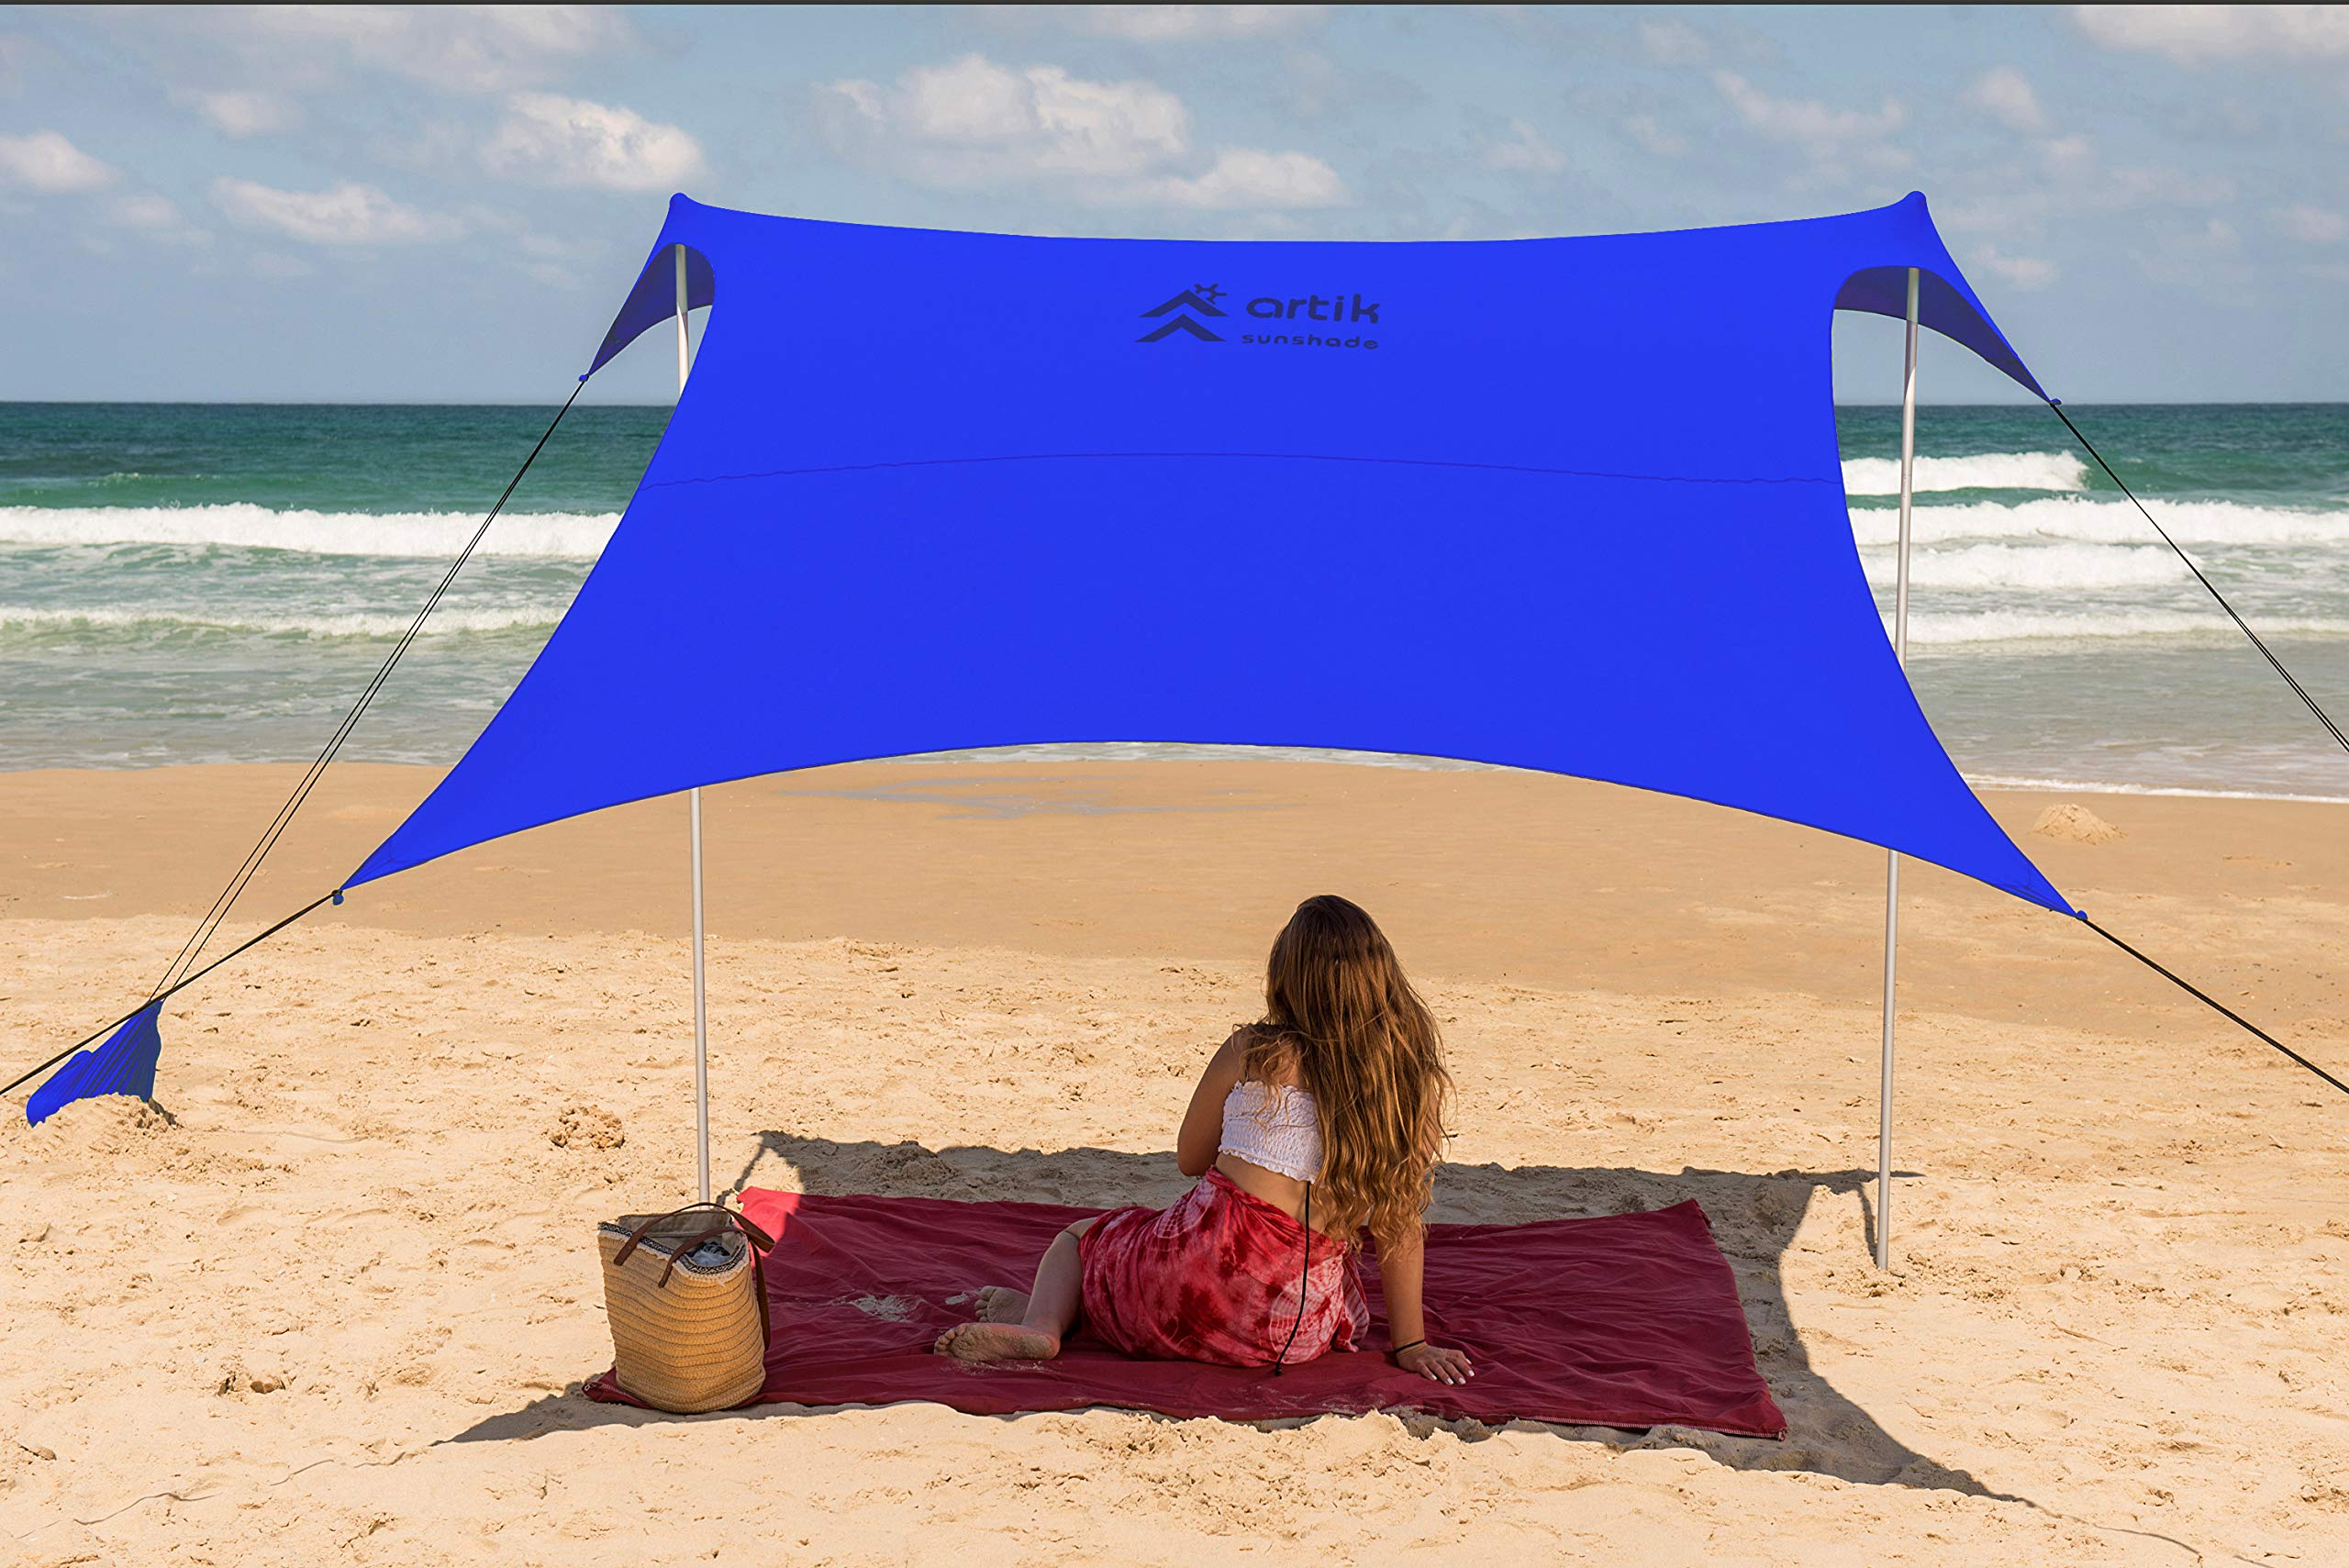 Beach Tent Sunshade Family Size 9.8'X9.8', 7ft Tall with Sandbag Anchors, Simple & Versatile. SPF50, Lycra SunShelter for The Beach,Camping and Outdoors. (Royal Blue, Large) by ARTIK SUNSHADE